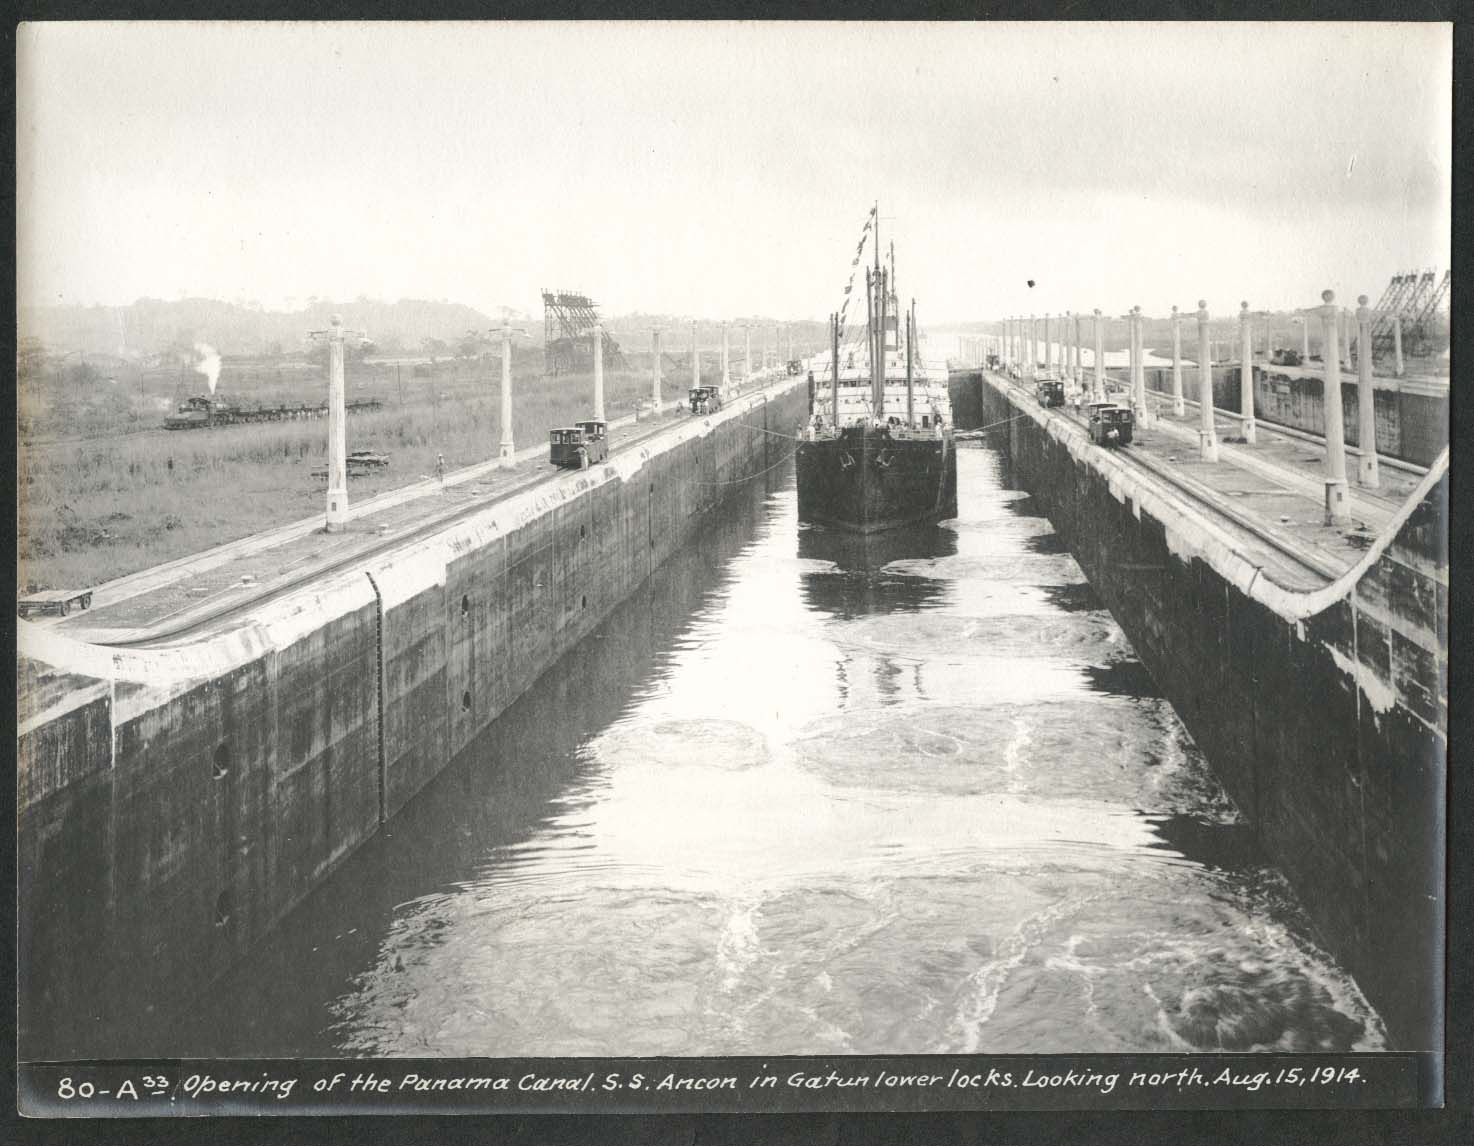 Image for Panama Canal photo 1914 Opening the canal S S Ancon at Gatun lower locks to N